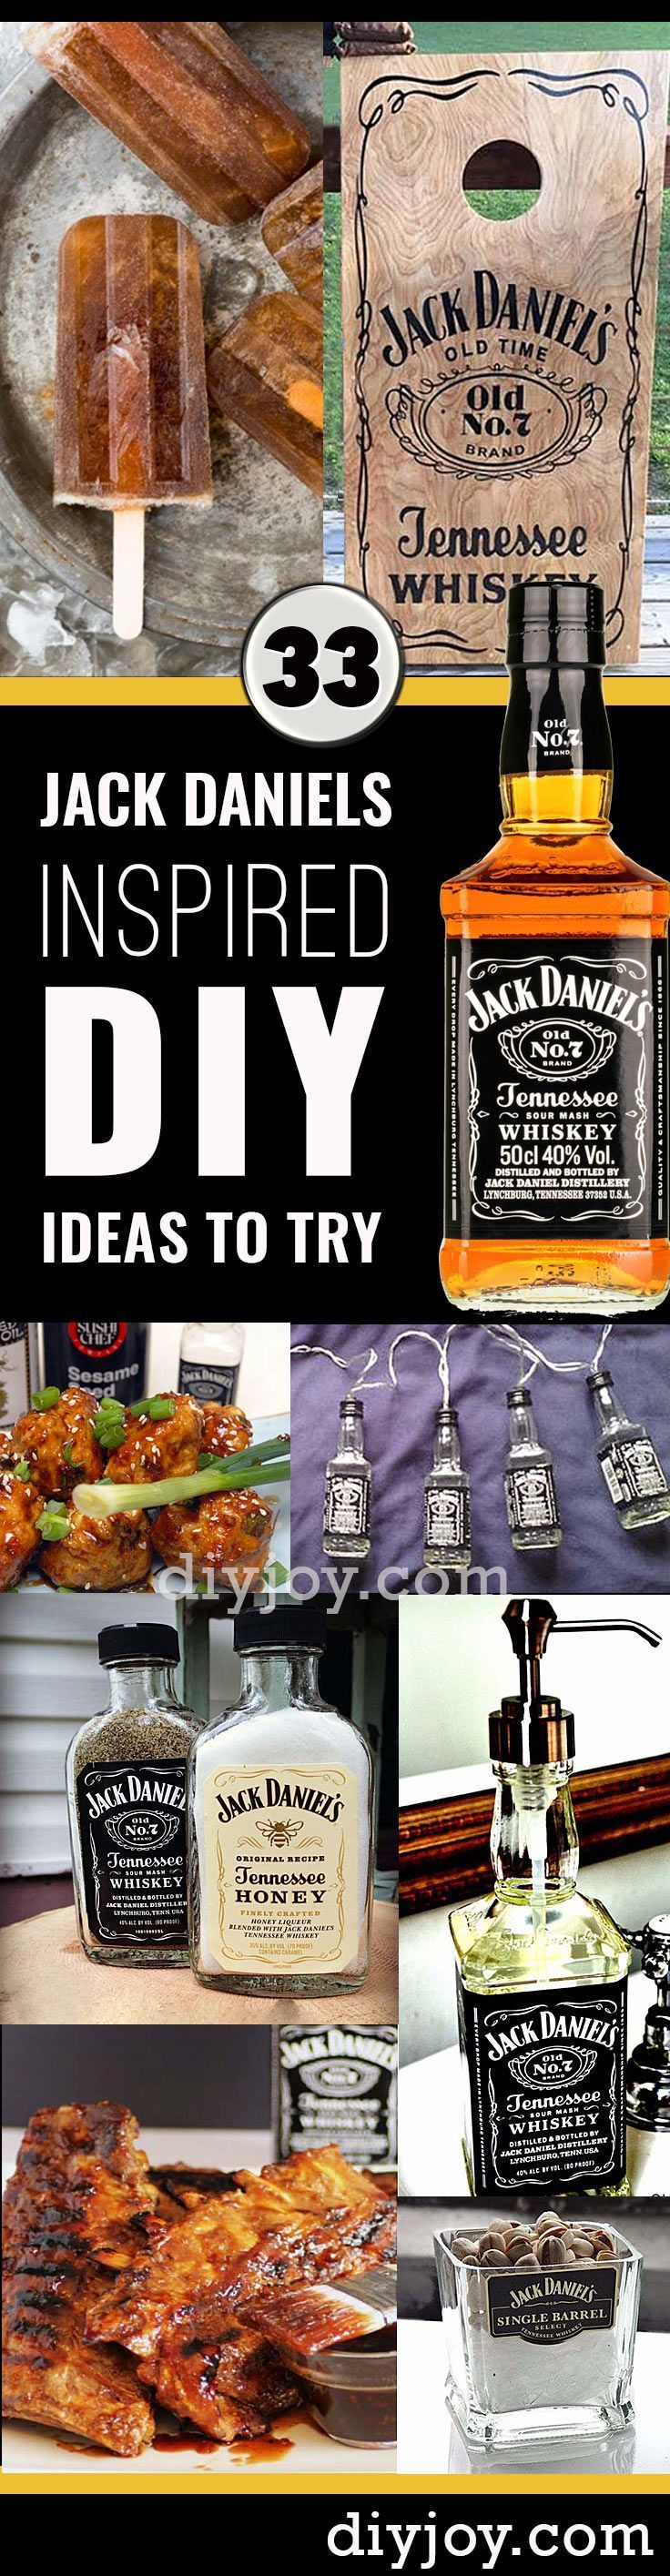 DIY Ideas Made With Jack Daniels - Recipes, Projects and Crafts With The Bottle, Everything From Lam